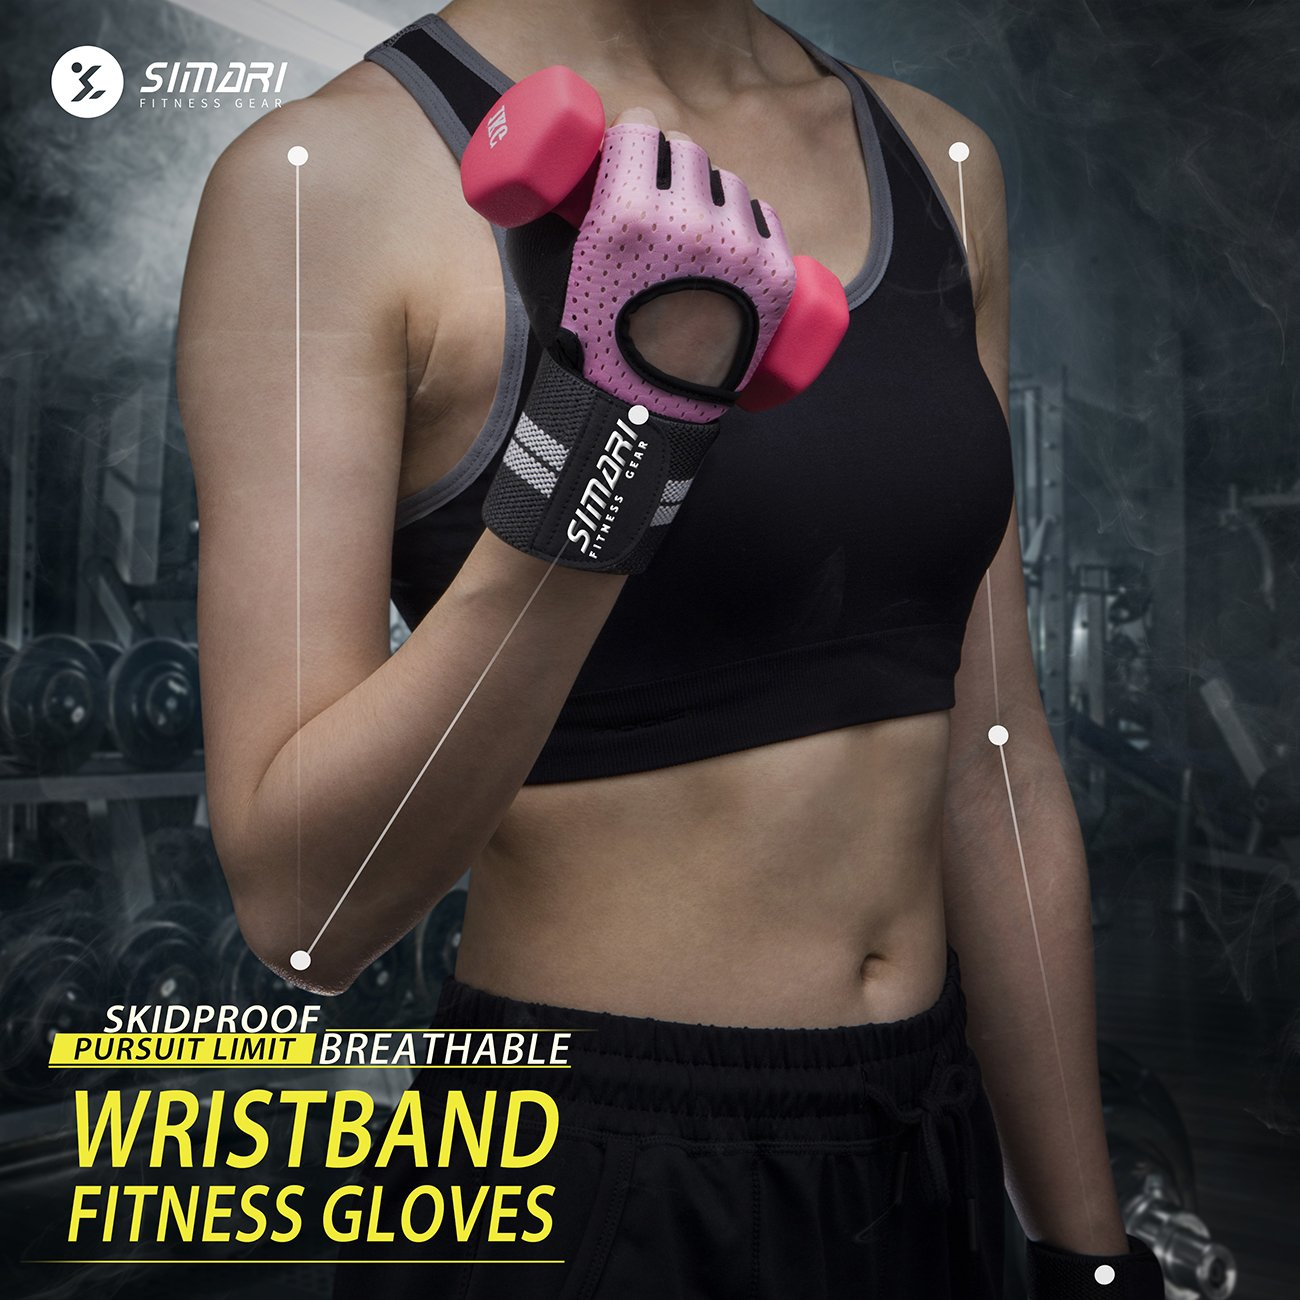 SIMARI Workout Gloves for Women Men,Training Gloves with Wrist Support for Fitness Exercise Weight Lifting Gym Crossfit,Made of Microfiber and Lycra